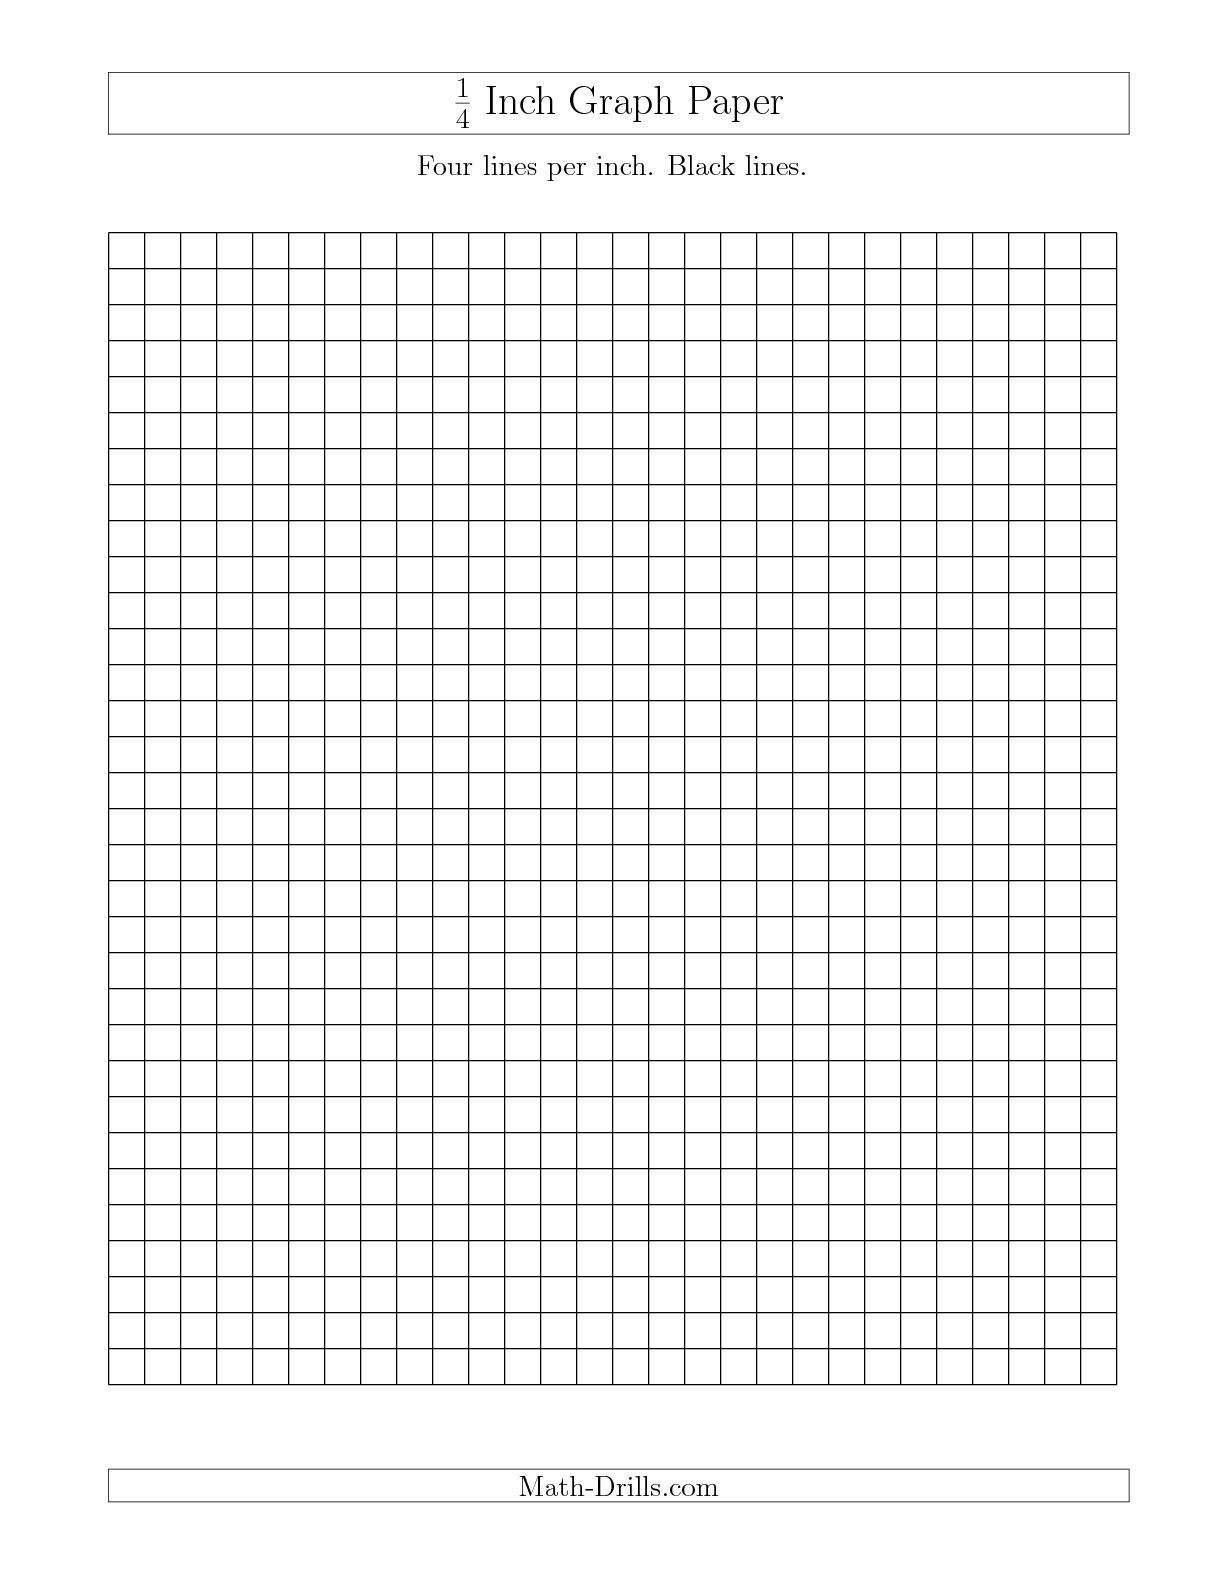 The 1 4 Inch Graph Paper With Black Lines A Math